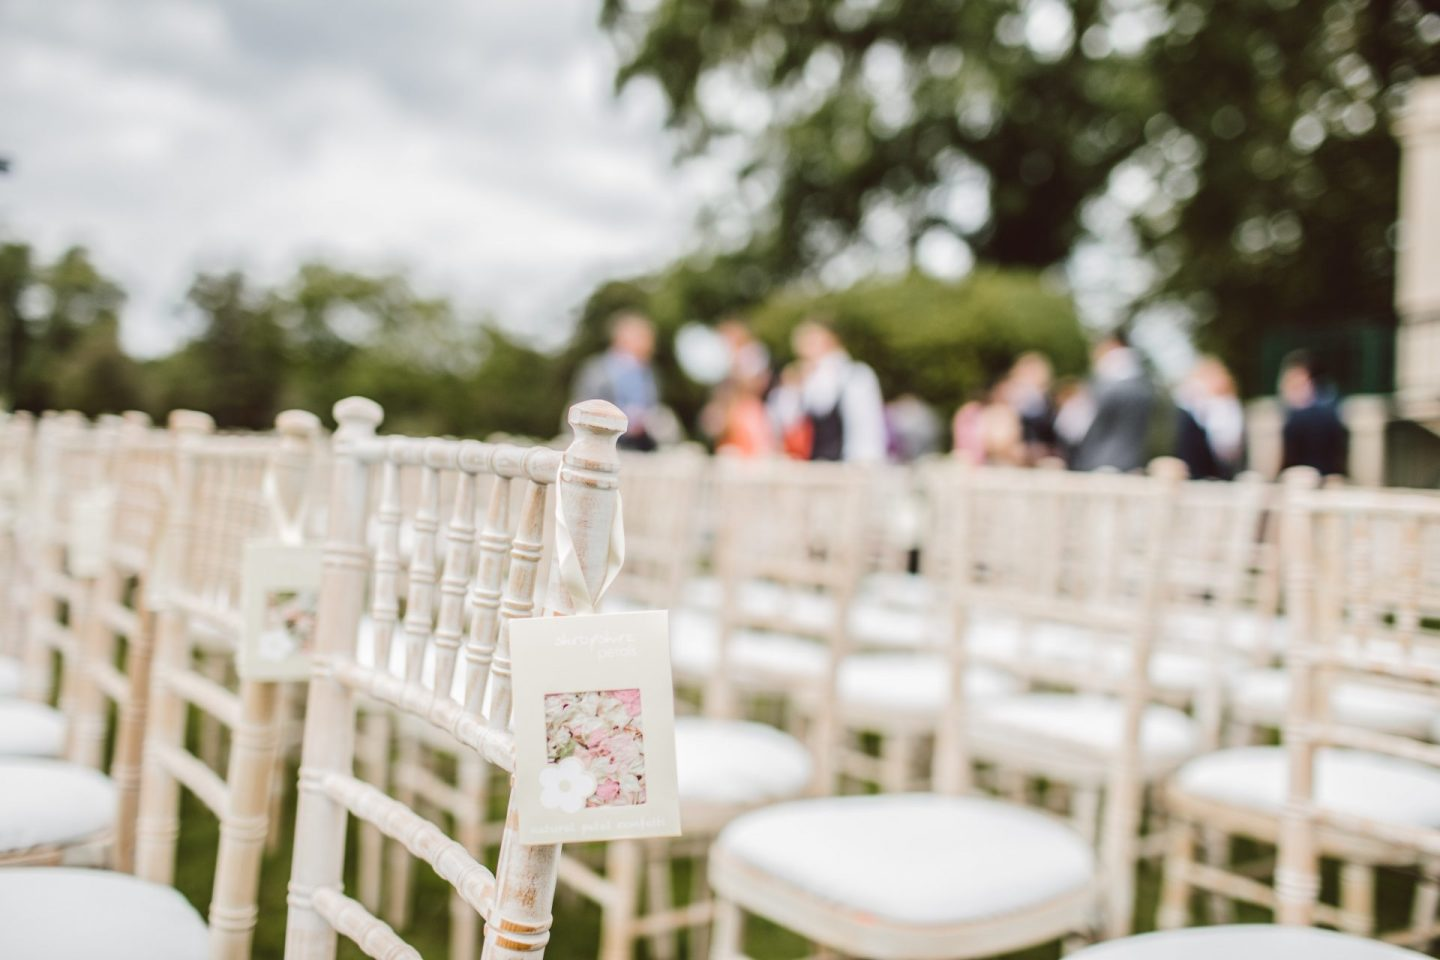 2019's most wasteful wedding trends, and how to avoid them